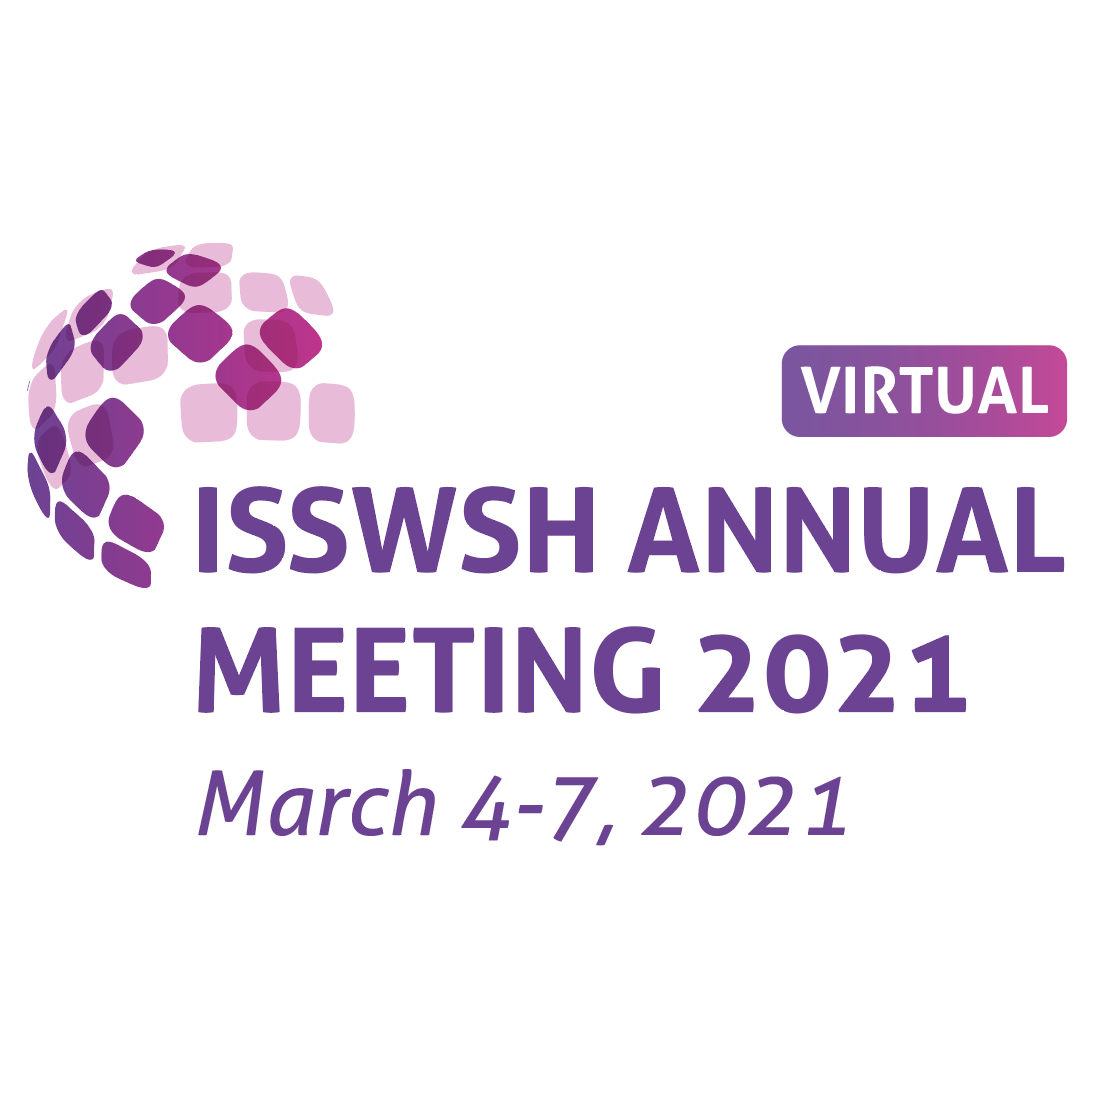 virtual meeting logo 2021 white